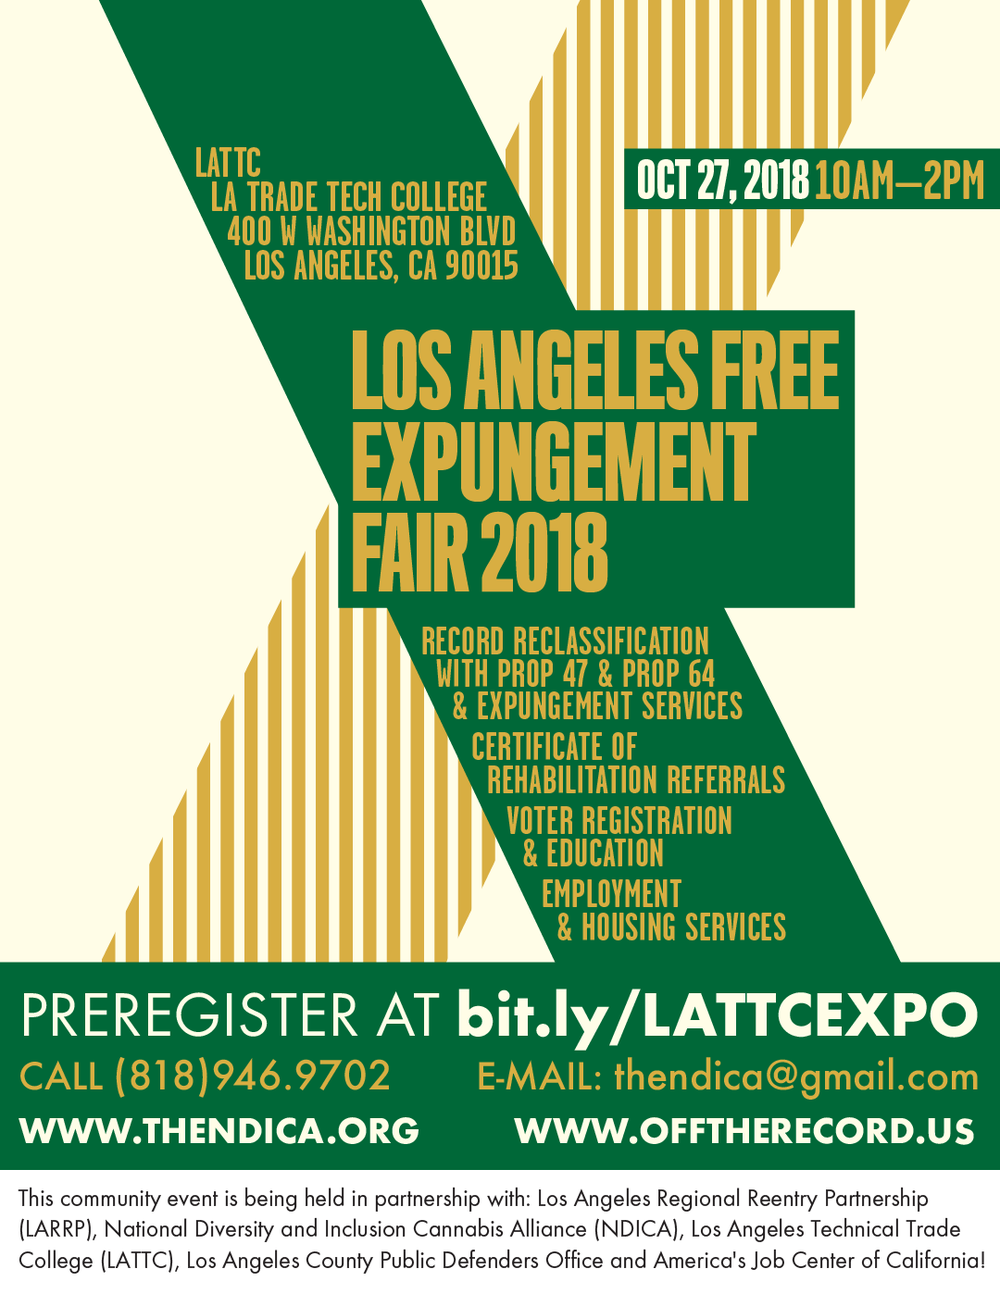 LATTC_NEW_FLYER_V2.png